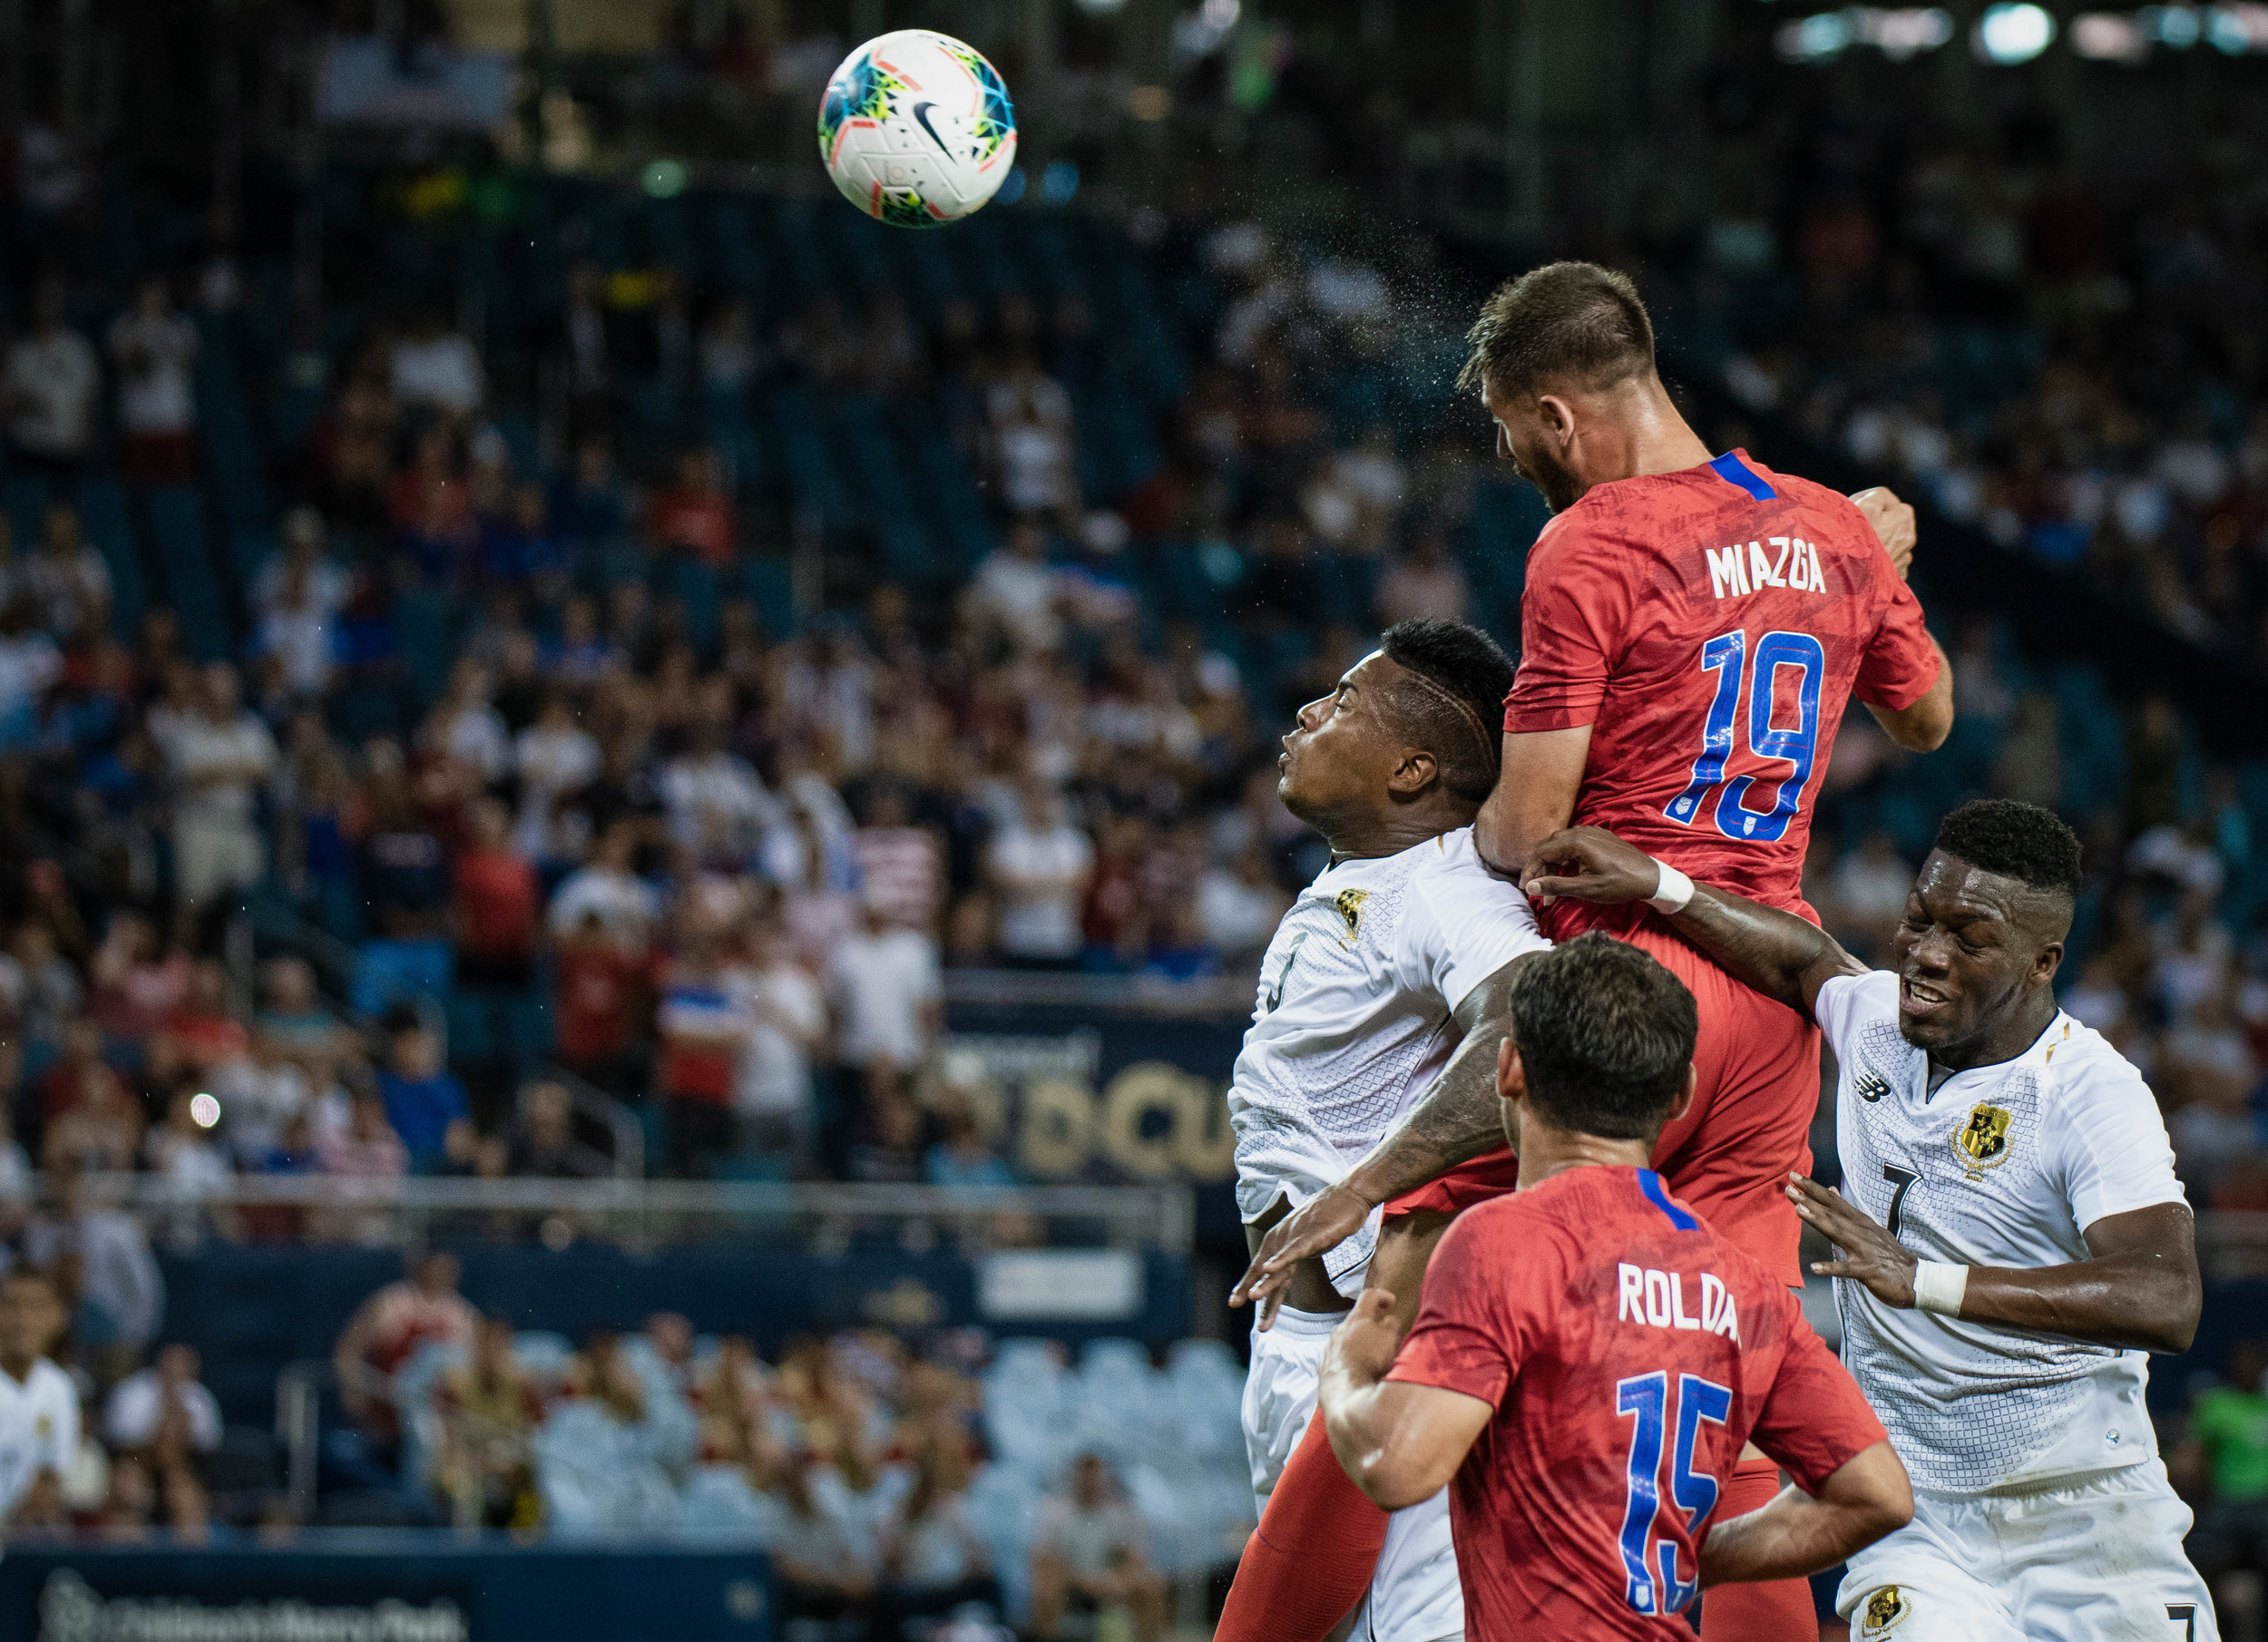 Matt Miazga (19) heads the ball during the United States vs. Panama, Gold Cup match on Wednesday, June 26, 2019 at Children's Mercy Park in Kansas City, Kansas. The U.S. defeated Panama 1-0 with a bicycle kick goal scored by Jozy Altidore in the 66th' minute.